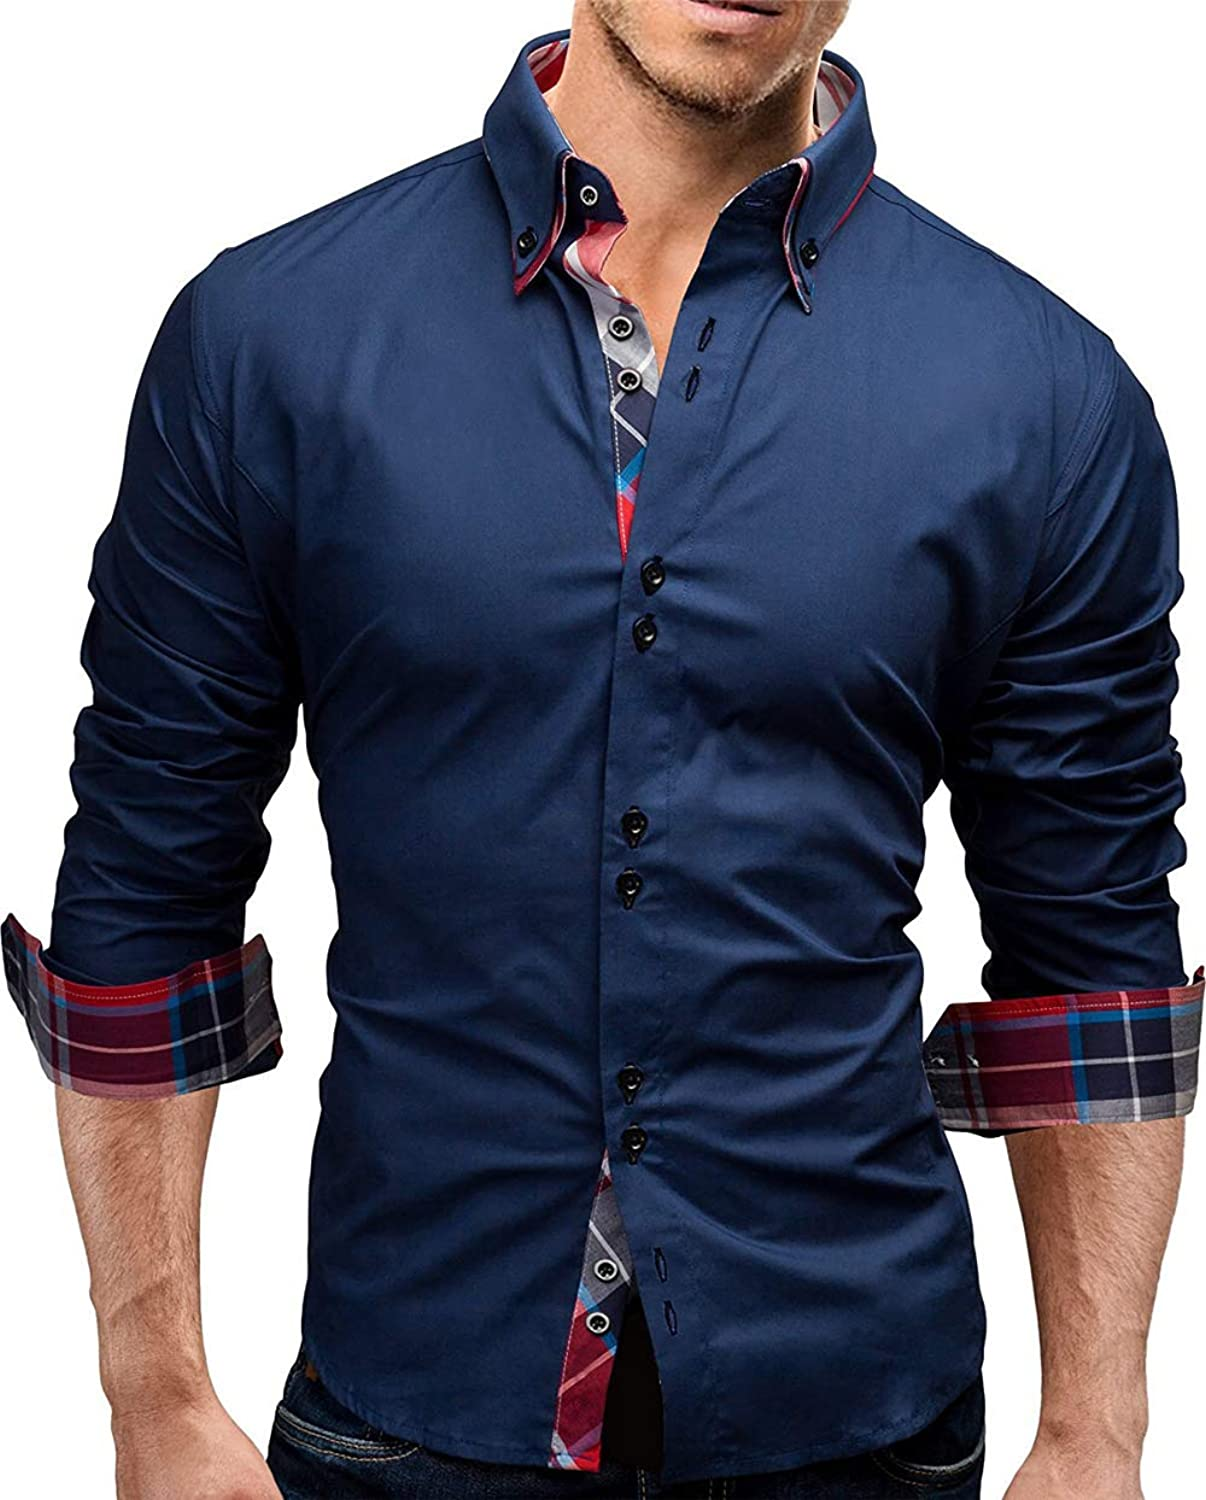 Xswsy XG Mens Casual Long-Sleeve Business Dress Shirts Solid Color Oxford Shirts